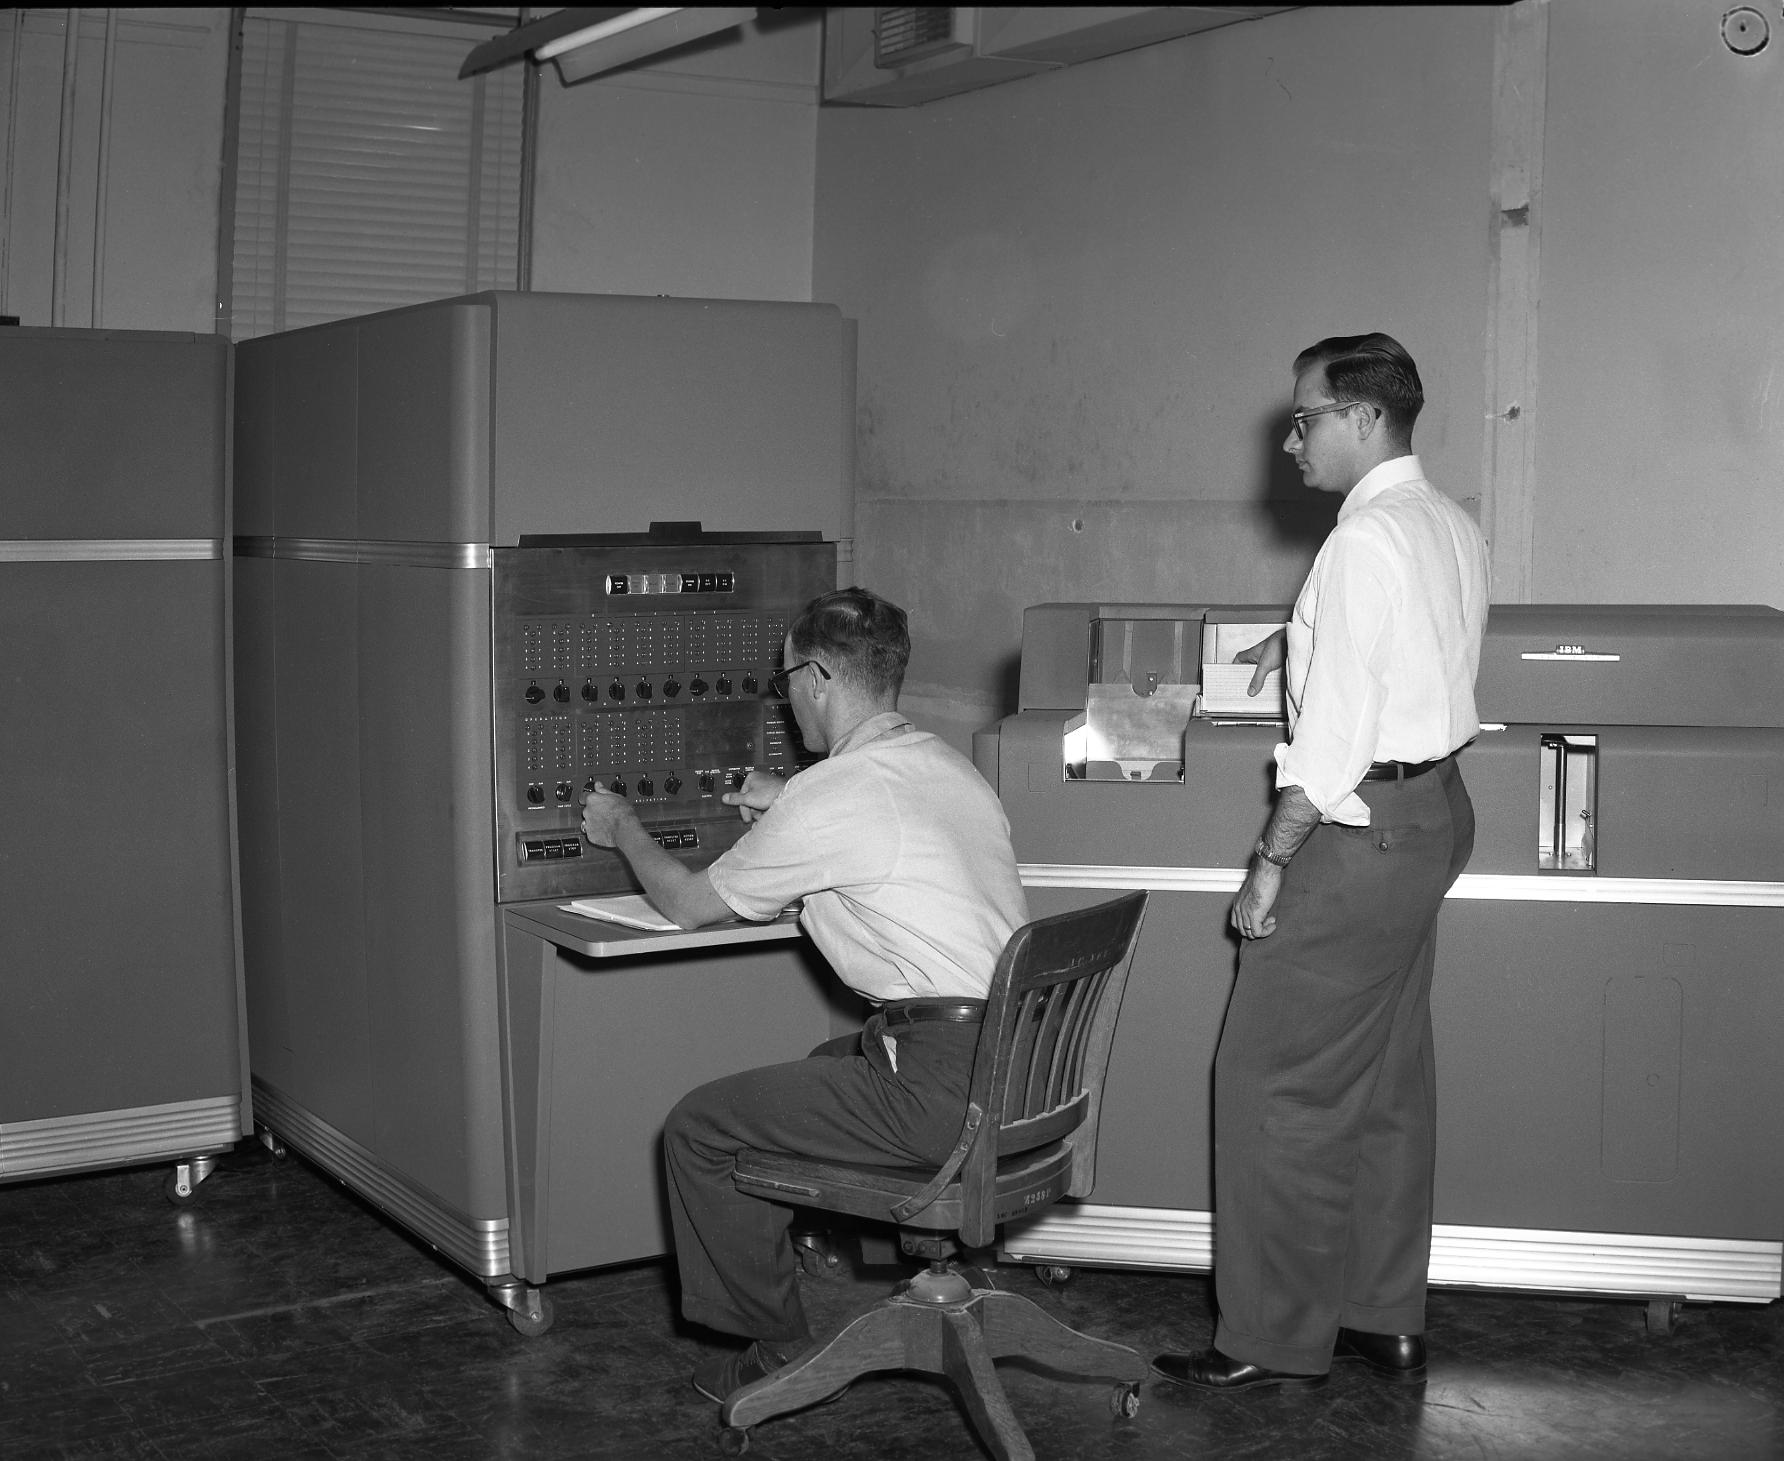 IBM 650 at Texas A&M.jpg